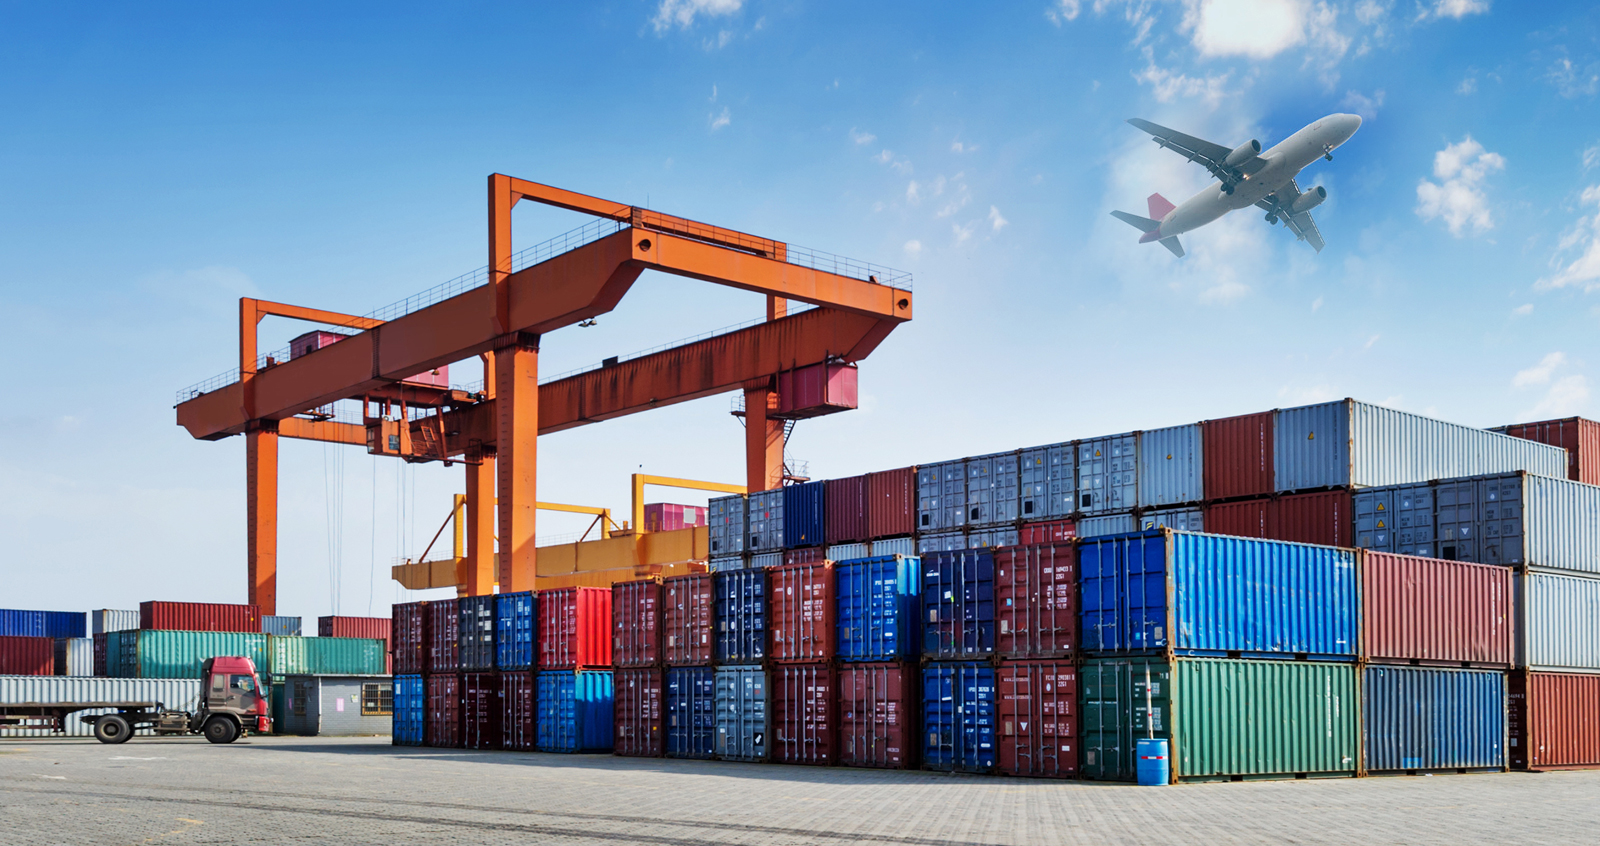 How Are Goods Safely Transported By Efficient Freight-Forwarders?